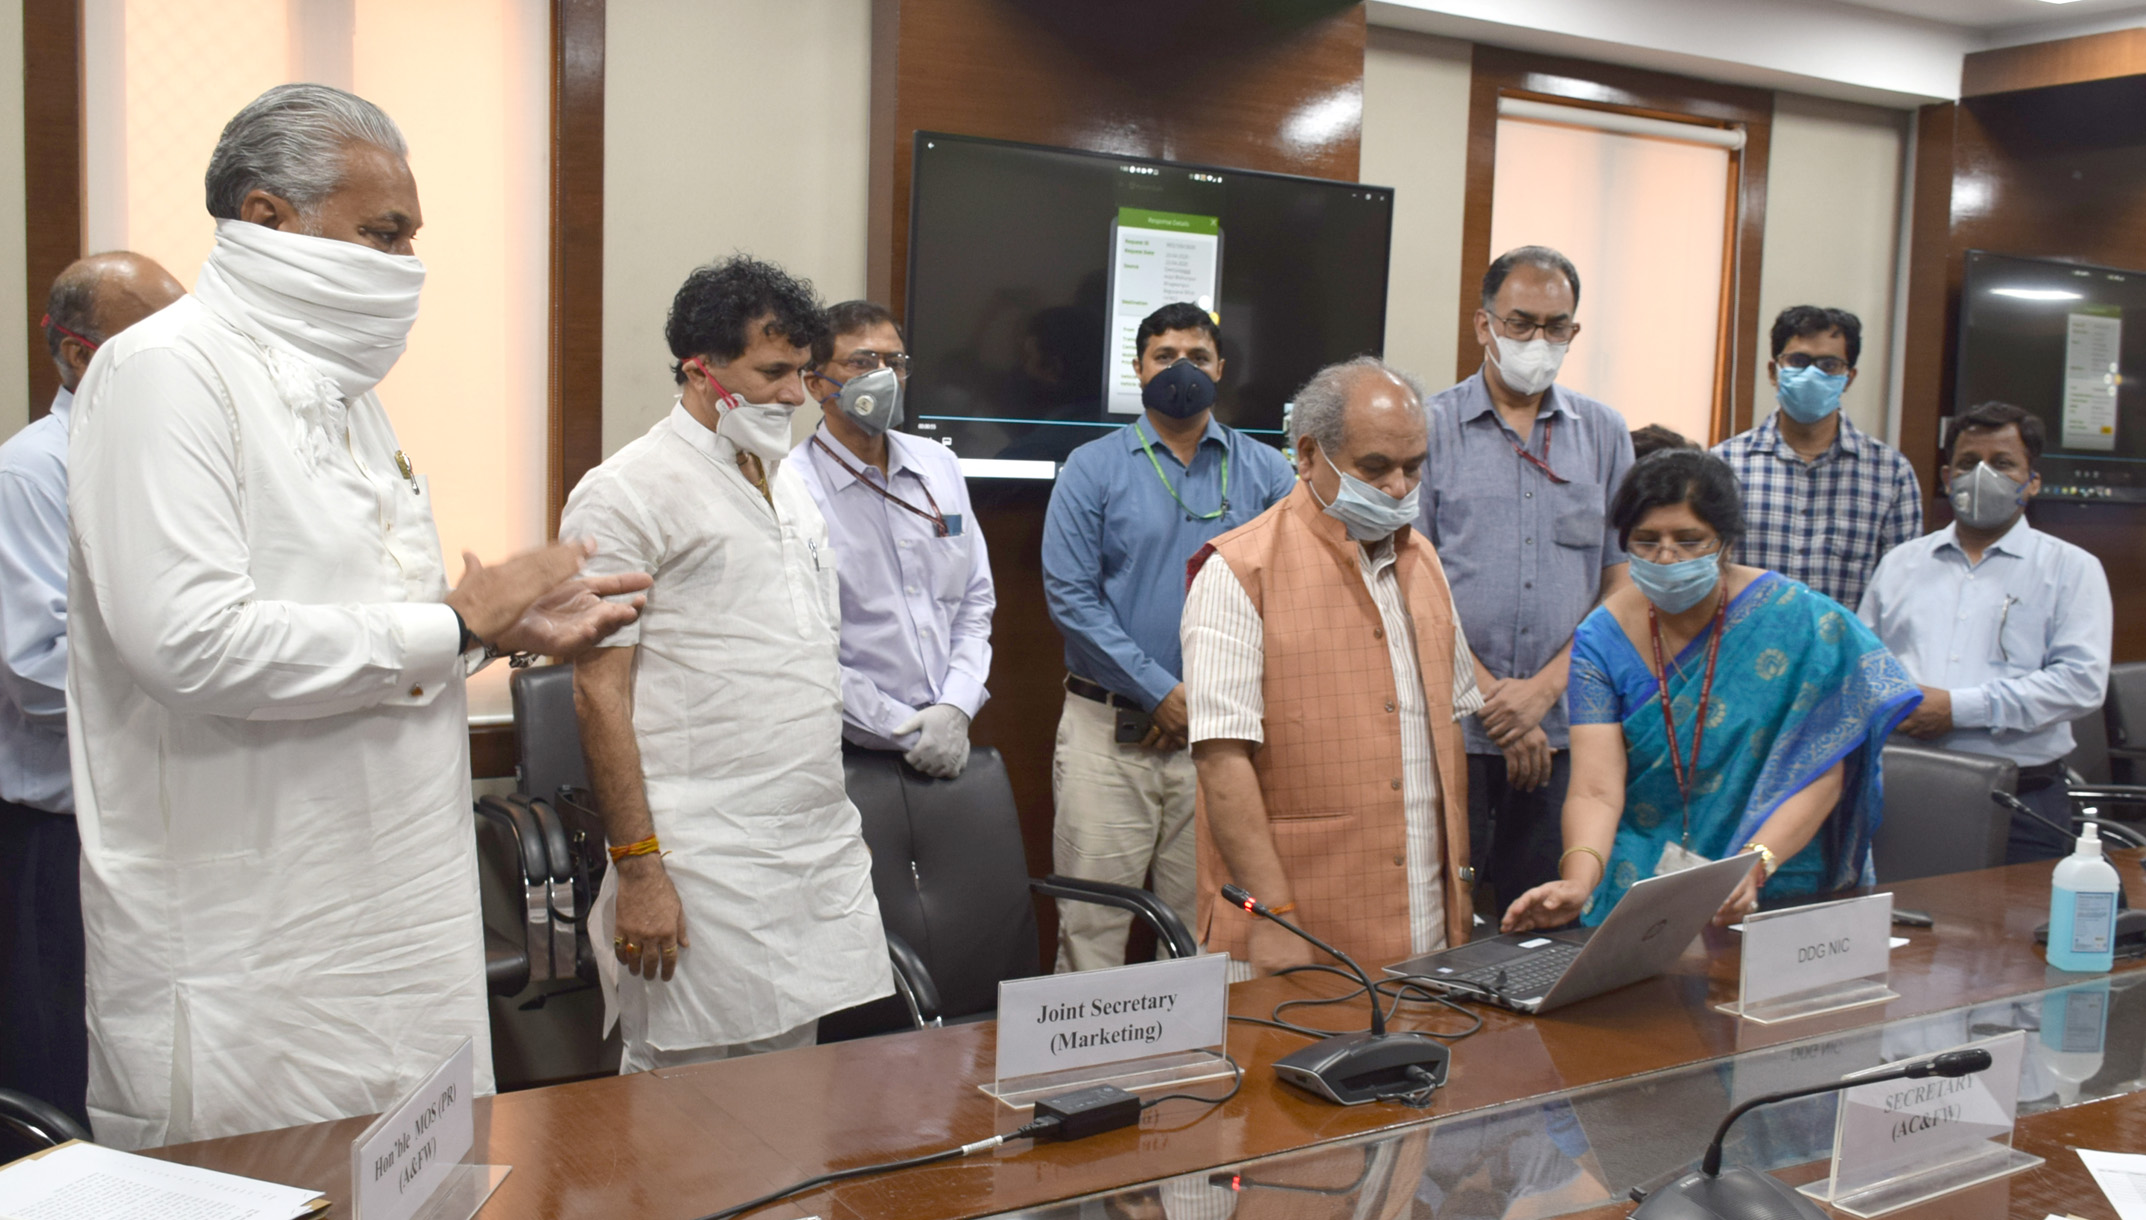 """The Union Minister for Agriculture & Farmers Welfare, Rural Development and Panchayati Raj, Shri Narendra Singh Tomar launches the """"Kisan Rath"""" Mobile App, at a function, in New Delhi on April 17, 2020. The Ministers of State for Agriculture & Family Welfare, Shri Parshottam Rupala and Shri Kailash Choudhary and senior officers are also seen."""